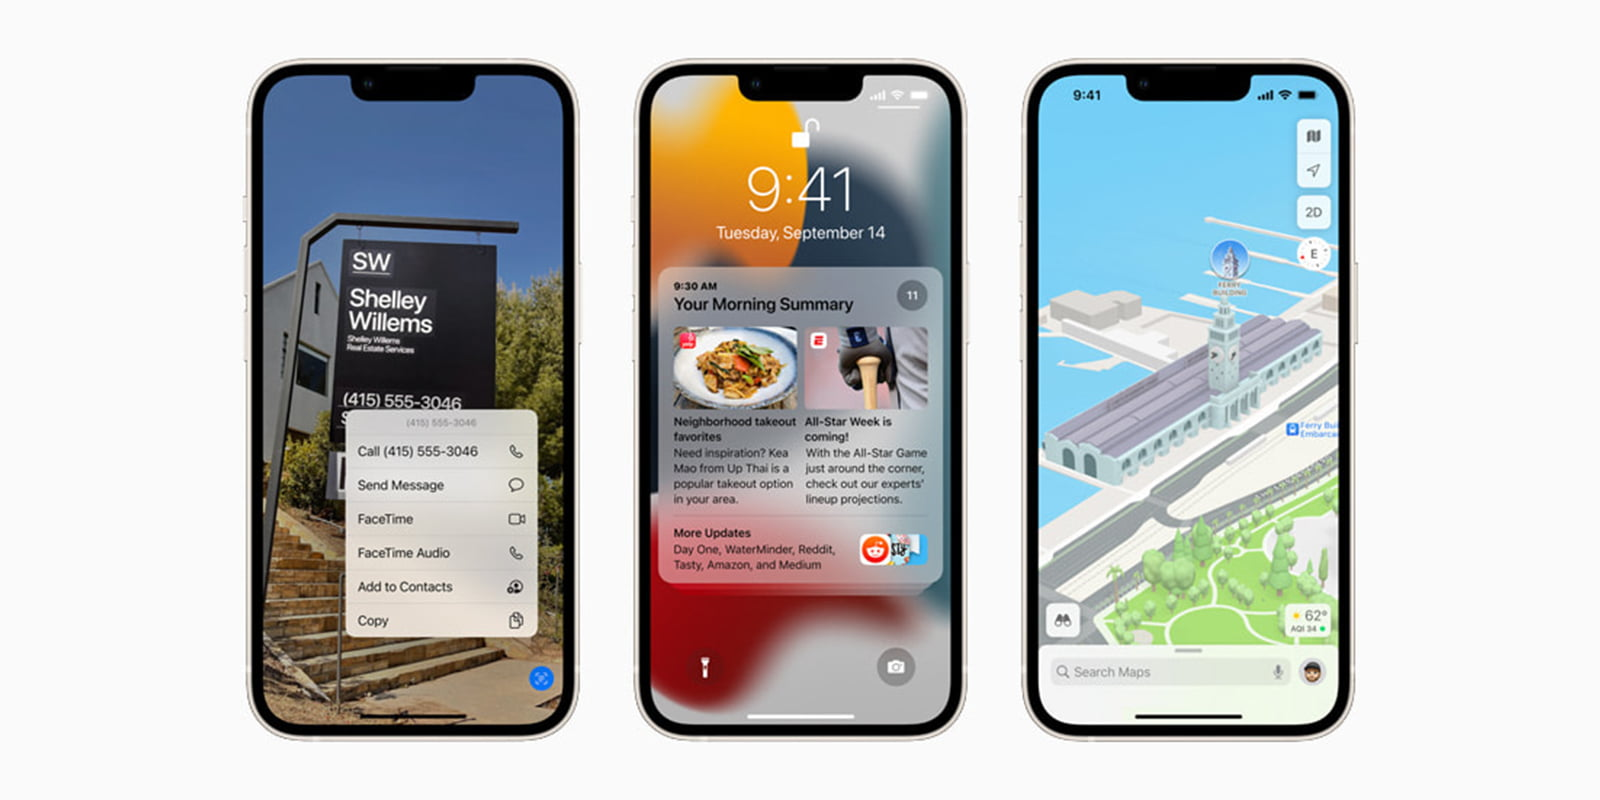 iOS 15 update is now available for iPhone 6s and later